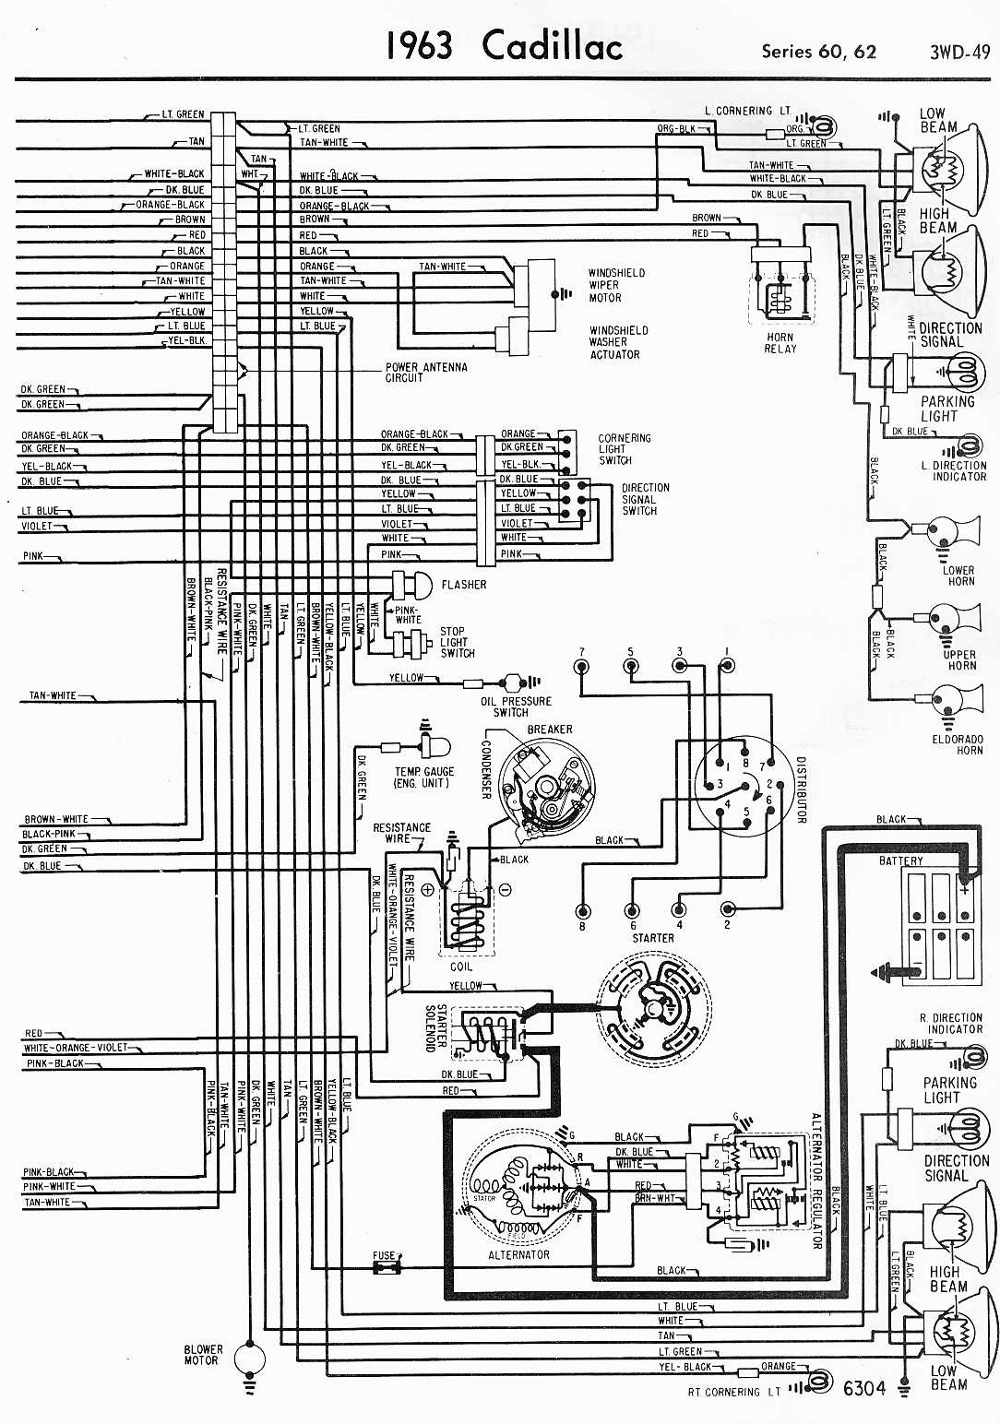 Cadillac Wiring Schematics - Tiz.convertigo.de • on cadillac wiring diagrams automotive, cadillac wiring for windows, cadillac headlights, 01 cadillac deville electrical schematics, cadillac cooling system, cadillac parts, cadillac brakes schematics,